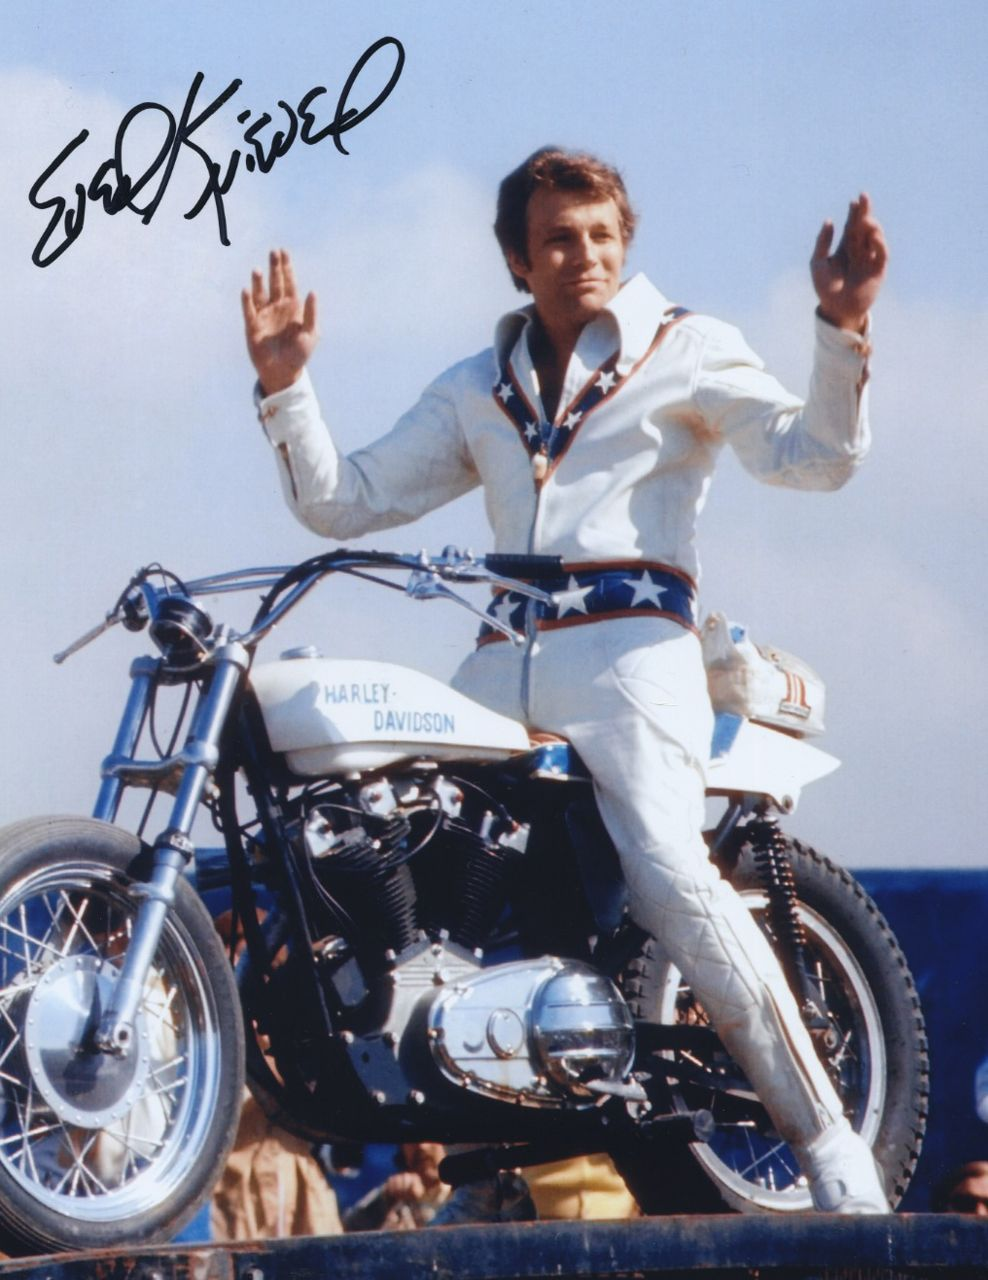 Evel Knievel tries to jumps the canyon but instead falls 600 feet to the ground and suffers only minor injuries.